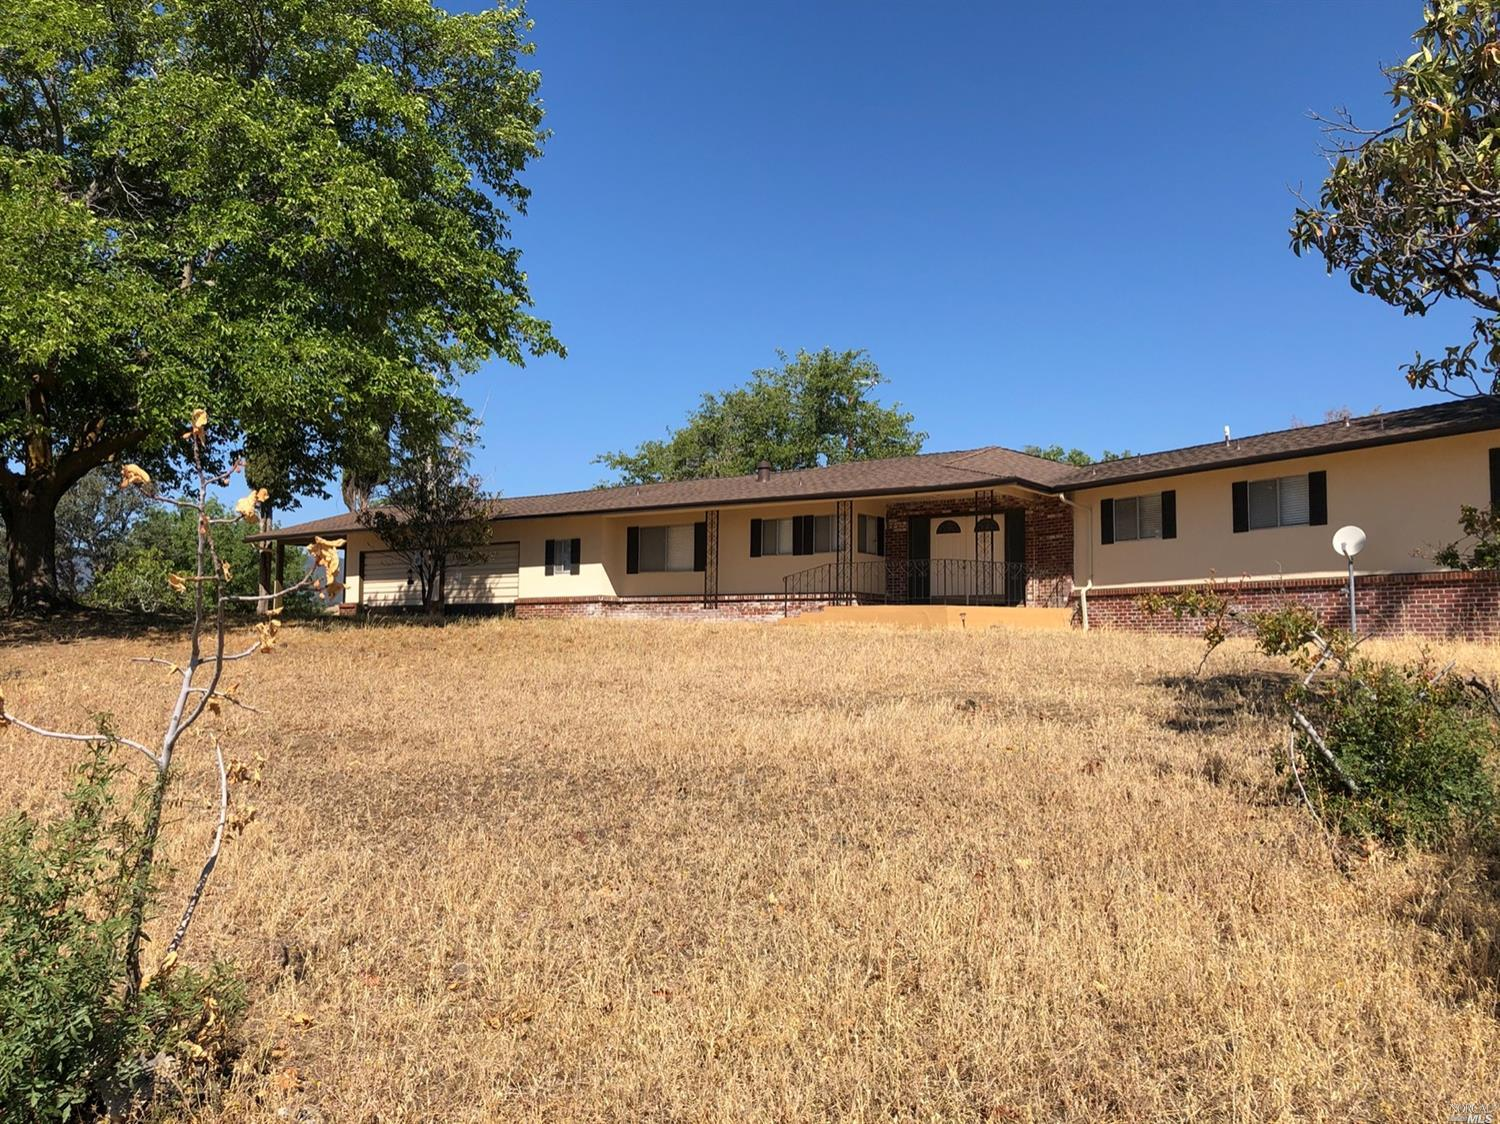 Photo of 4127 Cantelow Road, Vacaville, CA 95688